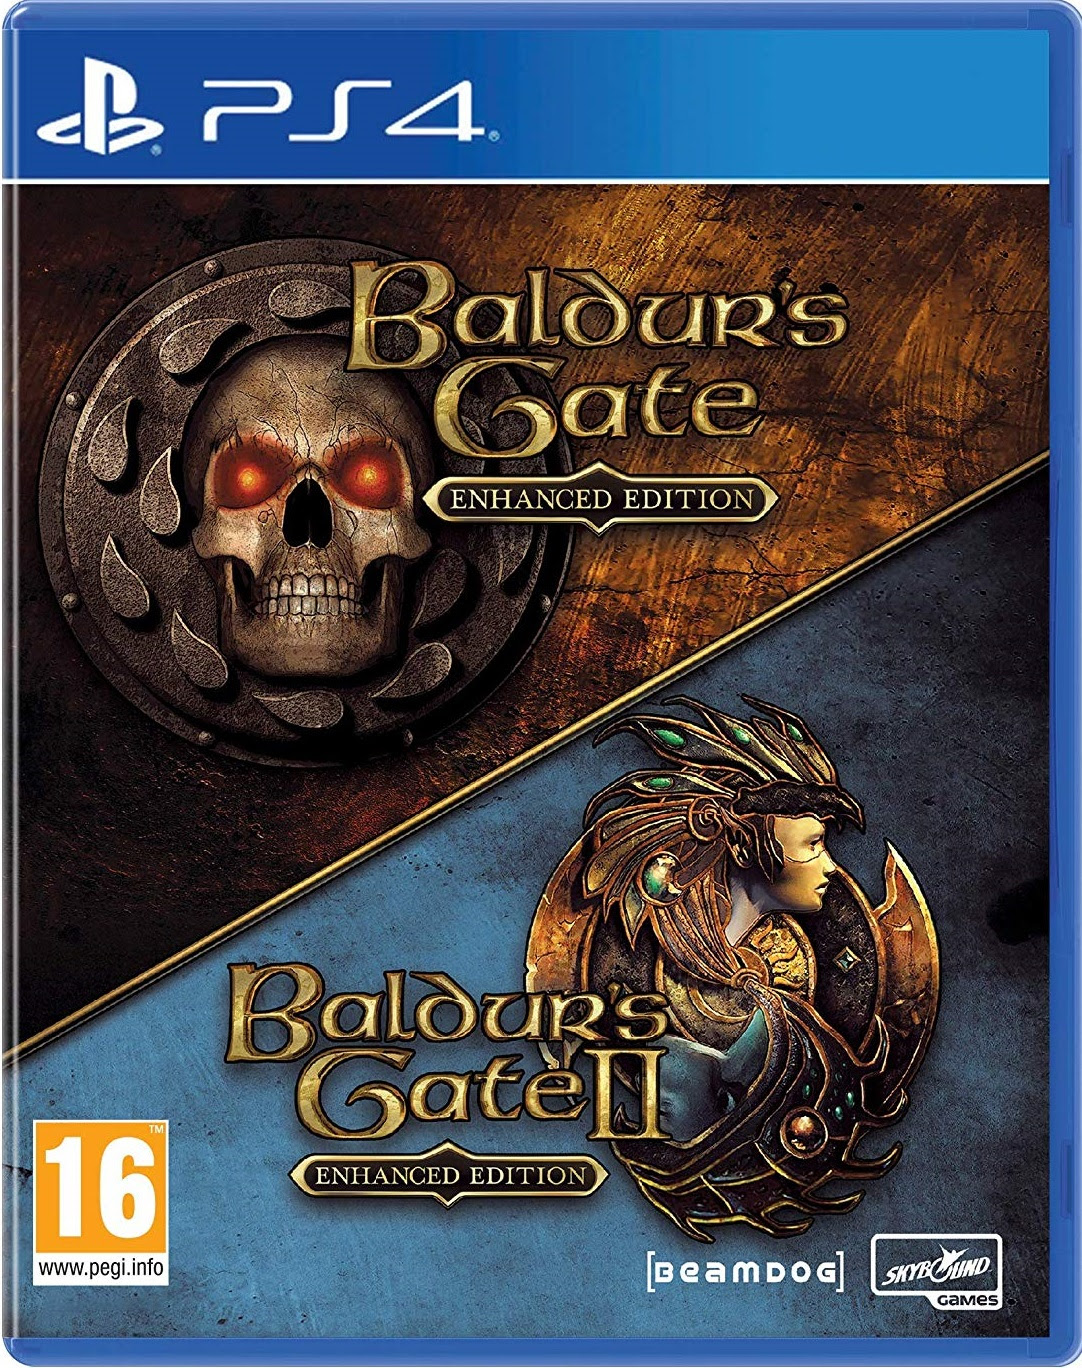 Baldurs Gate 1+2 Enhanced Edition